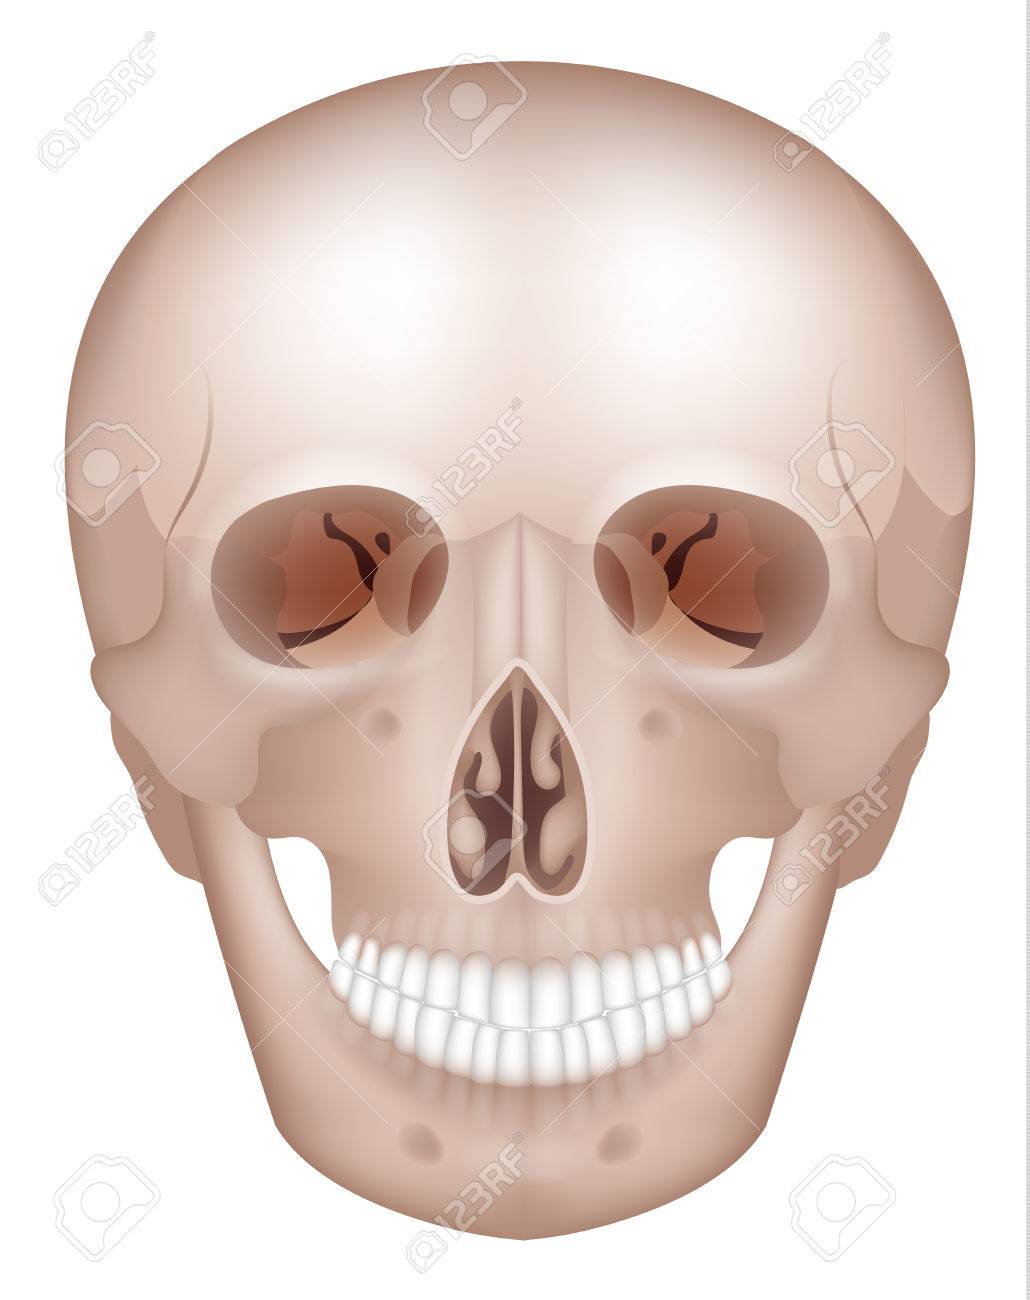 Human Skull Detailed Anatomy Frontal View, Isolated On White Royalty ...